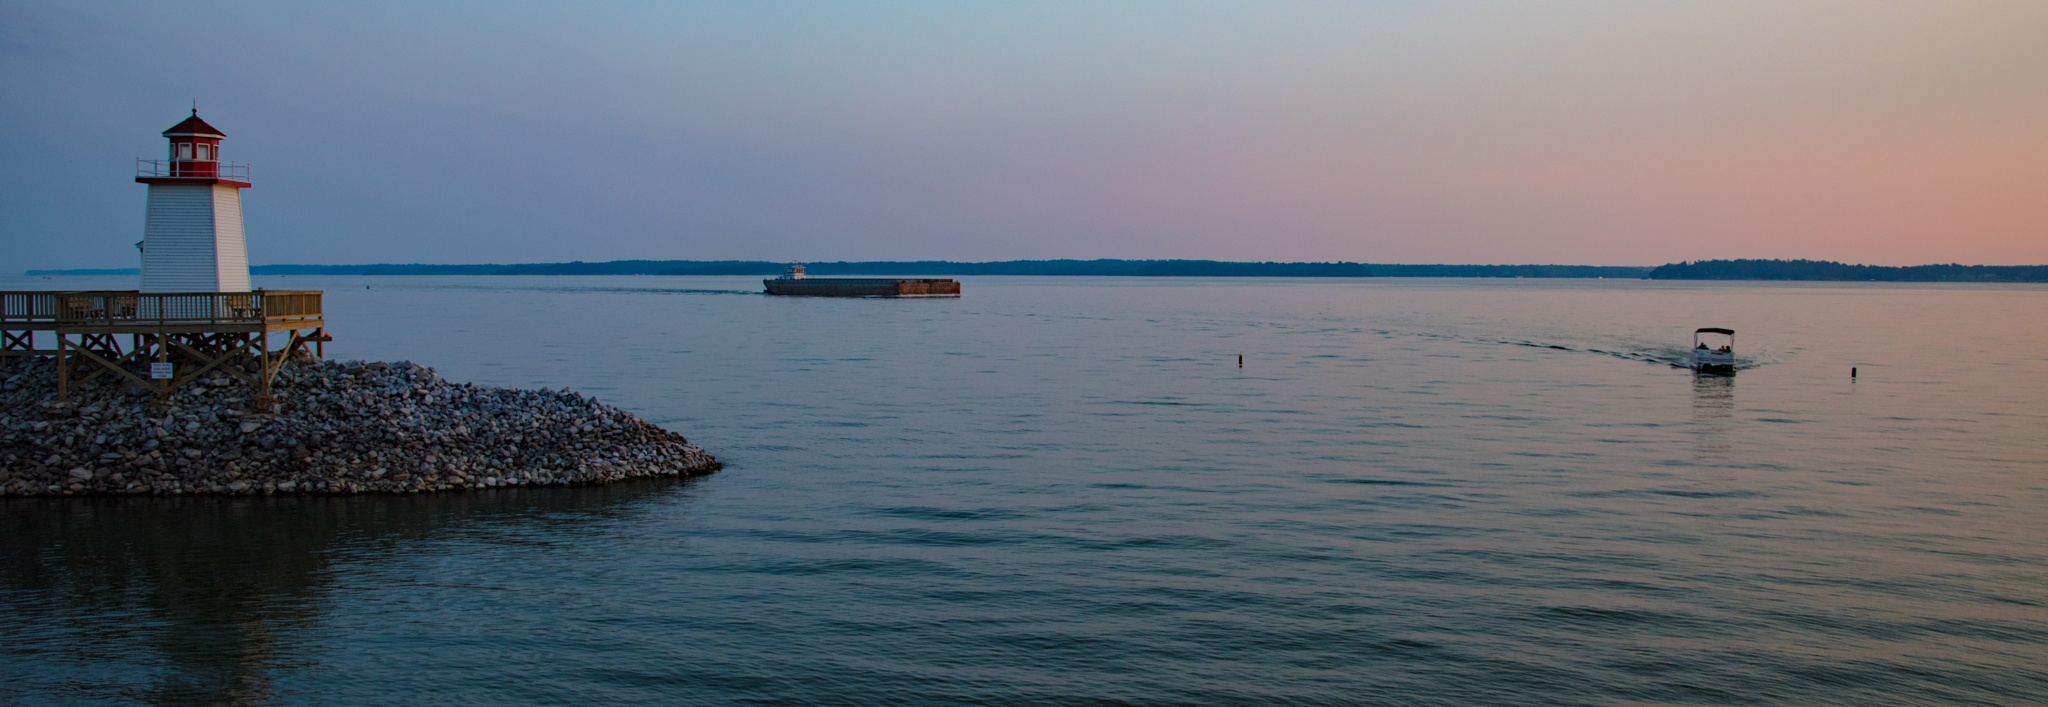 Lighthouse, boat and barge by Neels deConing